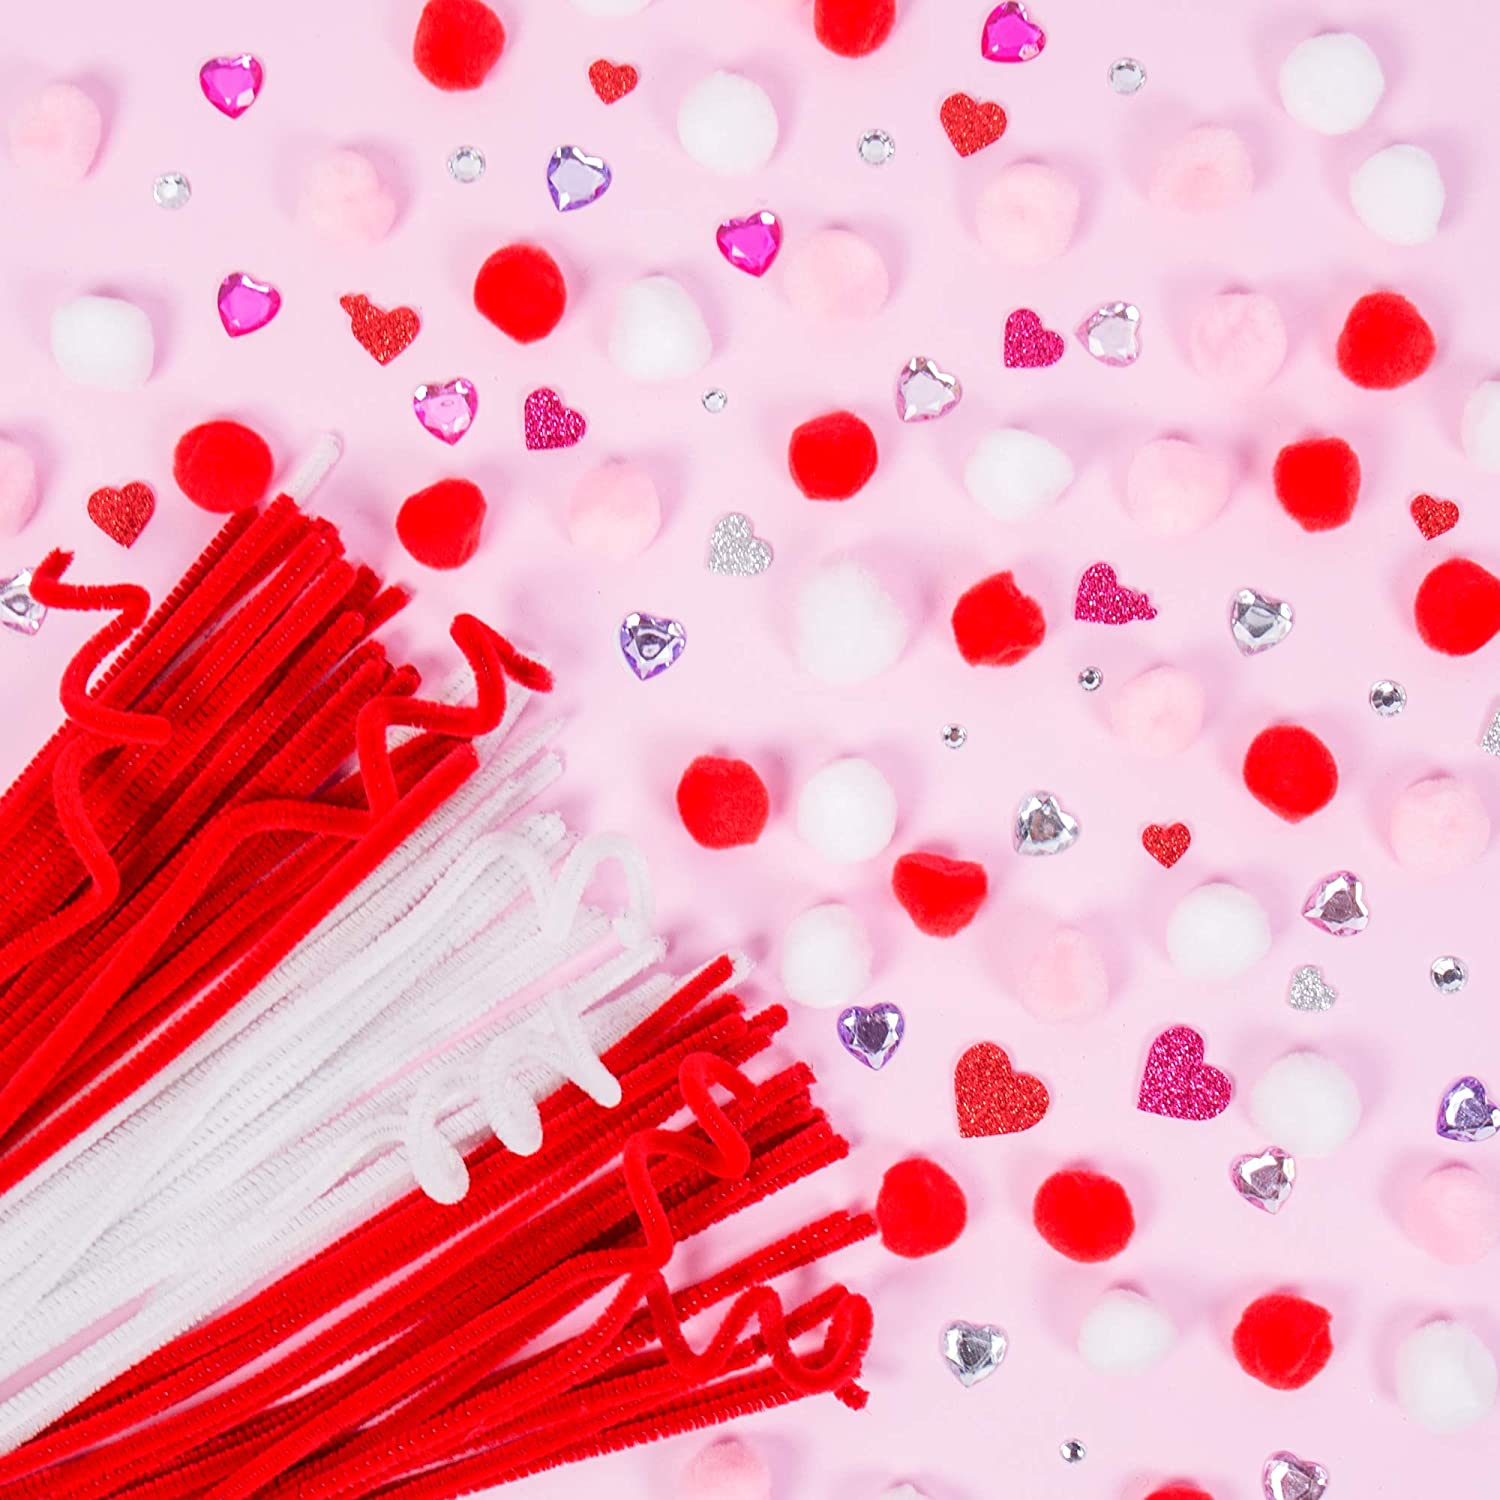 Pipe Cleaners Foam Stickers White /& Blue Poms Craft Sticks Red Horizon Group USA Patriotic Craft Embellishment Kit